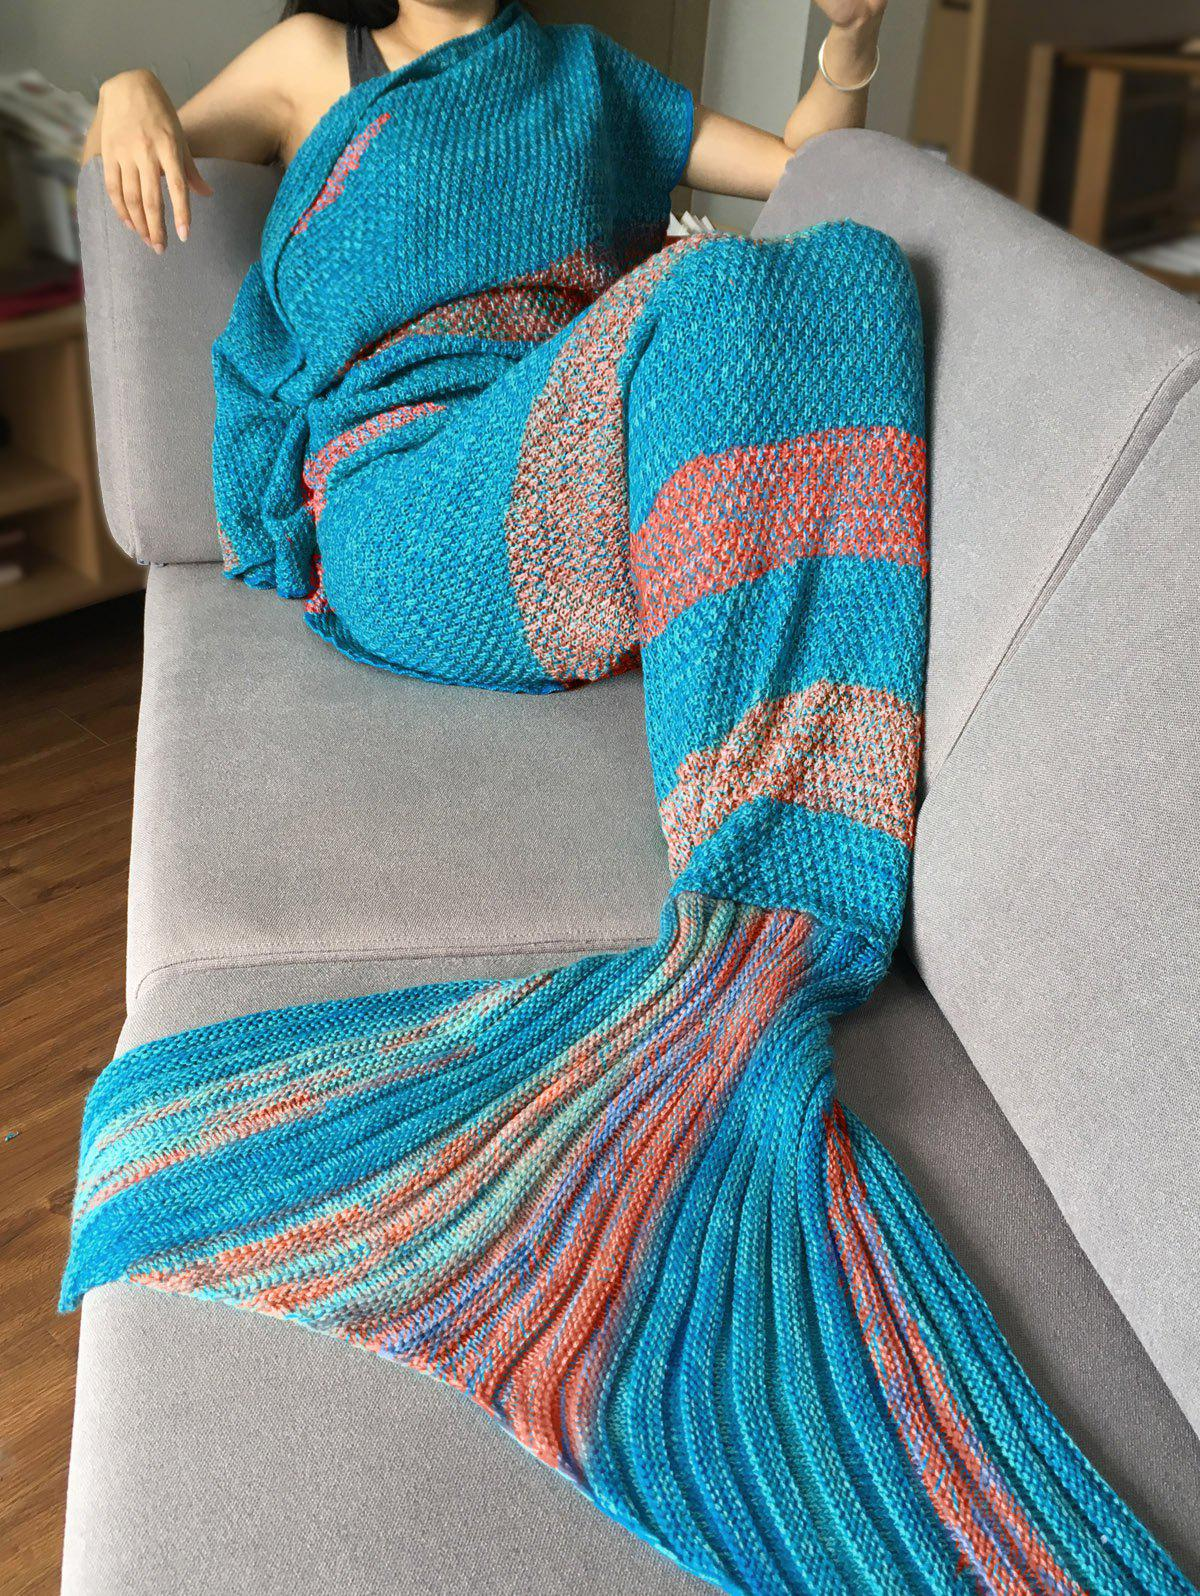 Crochet Stripe Pattern Mermaid Tail Shape Bedding Blanket - CYAN